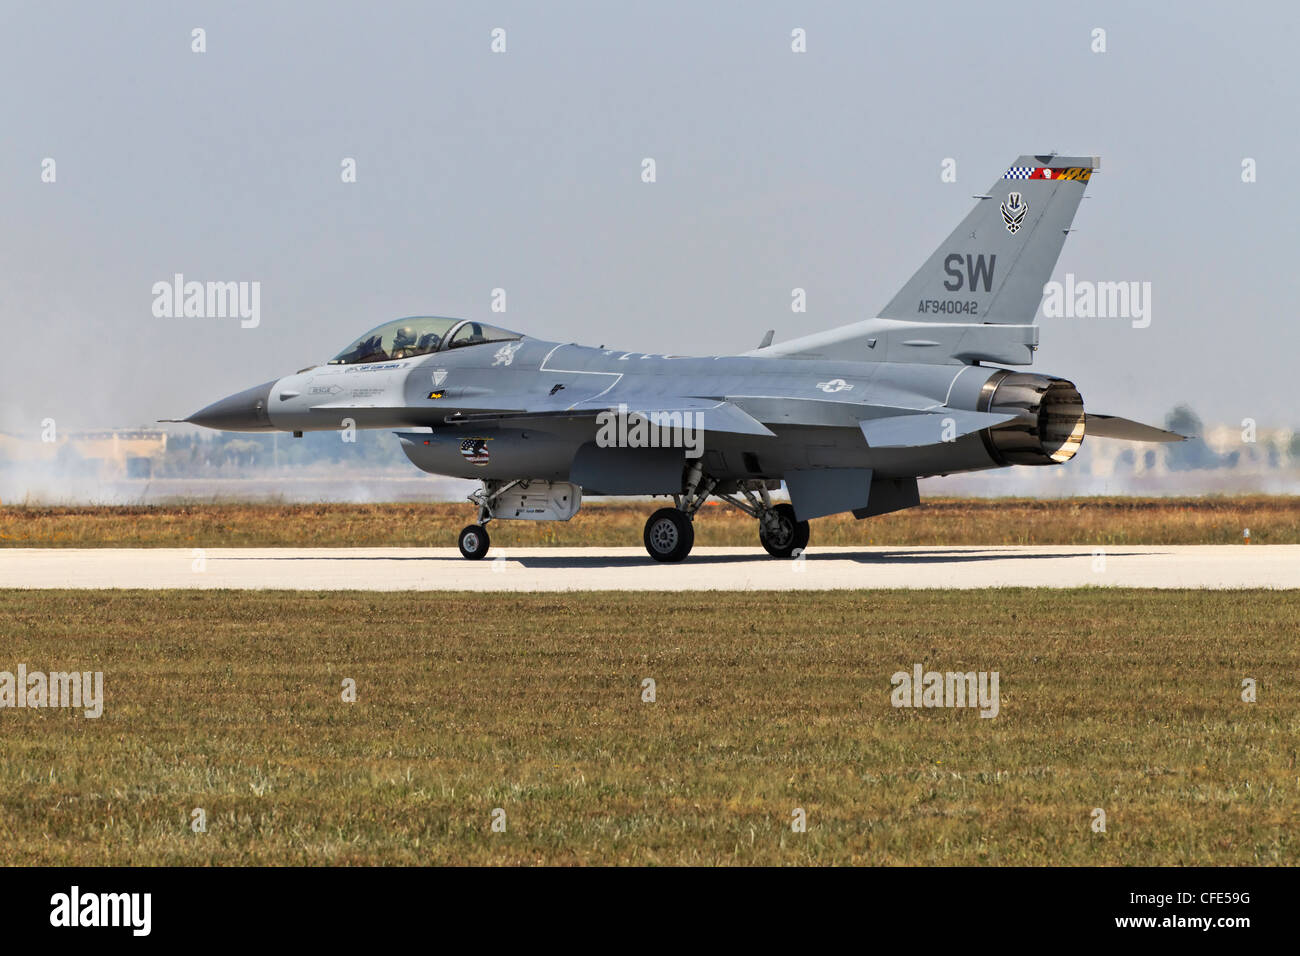 General Dynamics F16 Fighting Falcon of the USAF - Stock Image